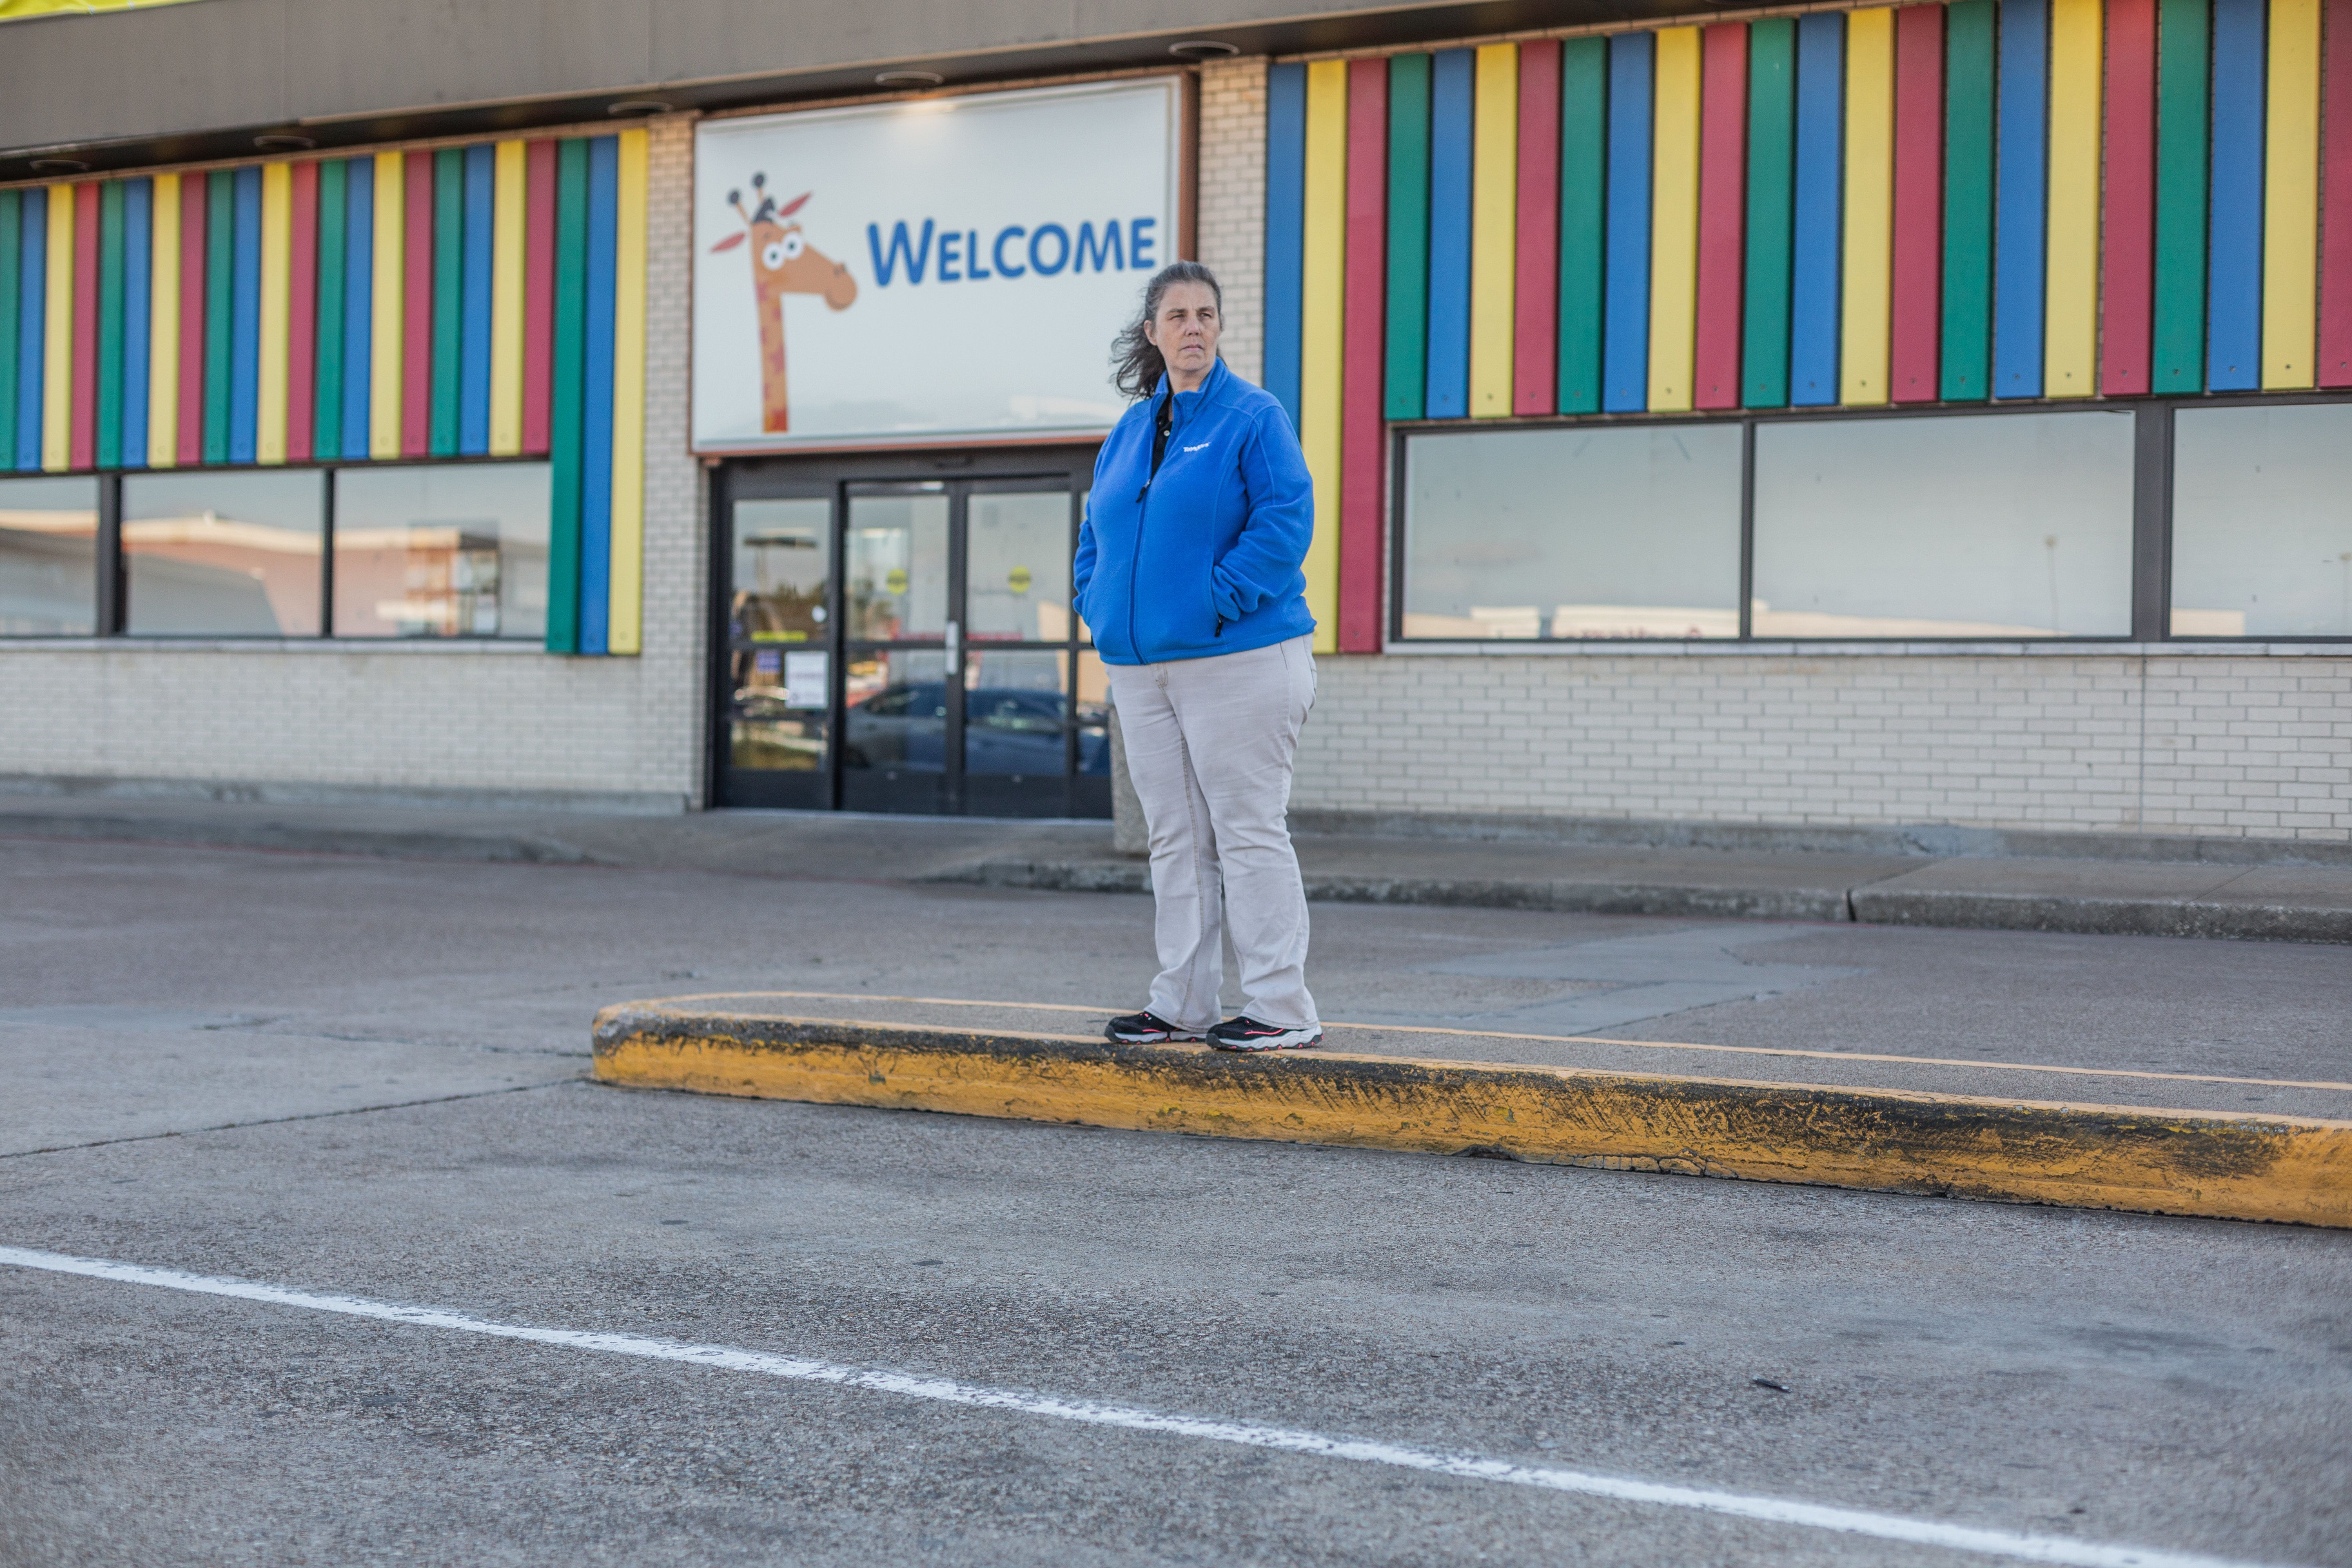 Maryjane Williams poses for a portrait in front of a Toys R Us Tuesday November 13, 2018 in Waco, Texas. Williams worked for the company for 20 years before being laid off when the company shut down in 2018.